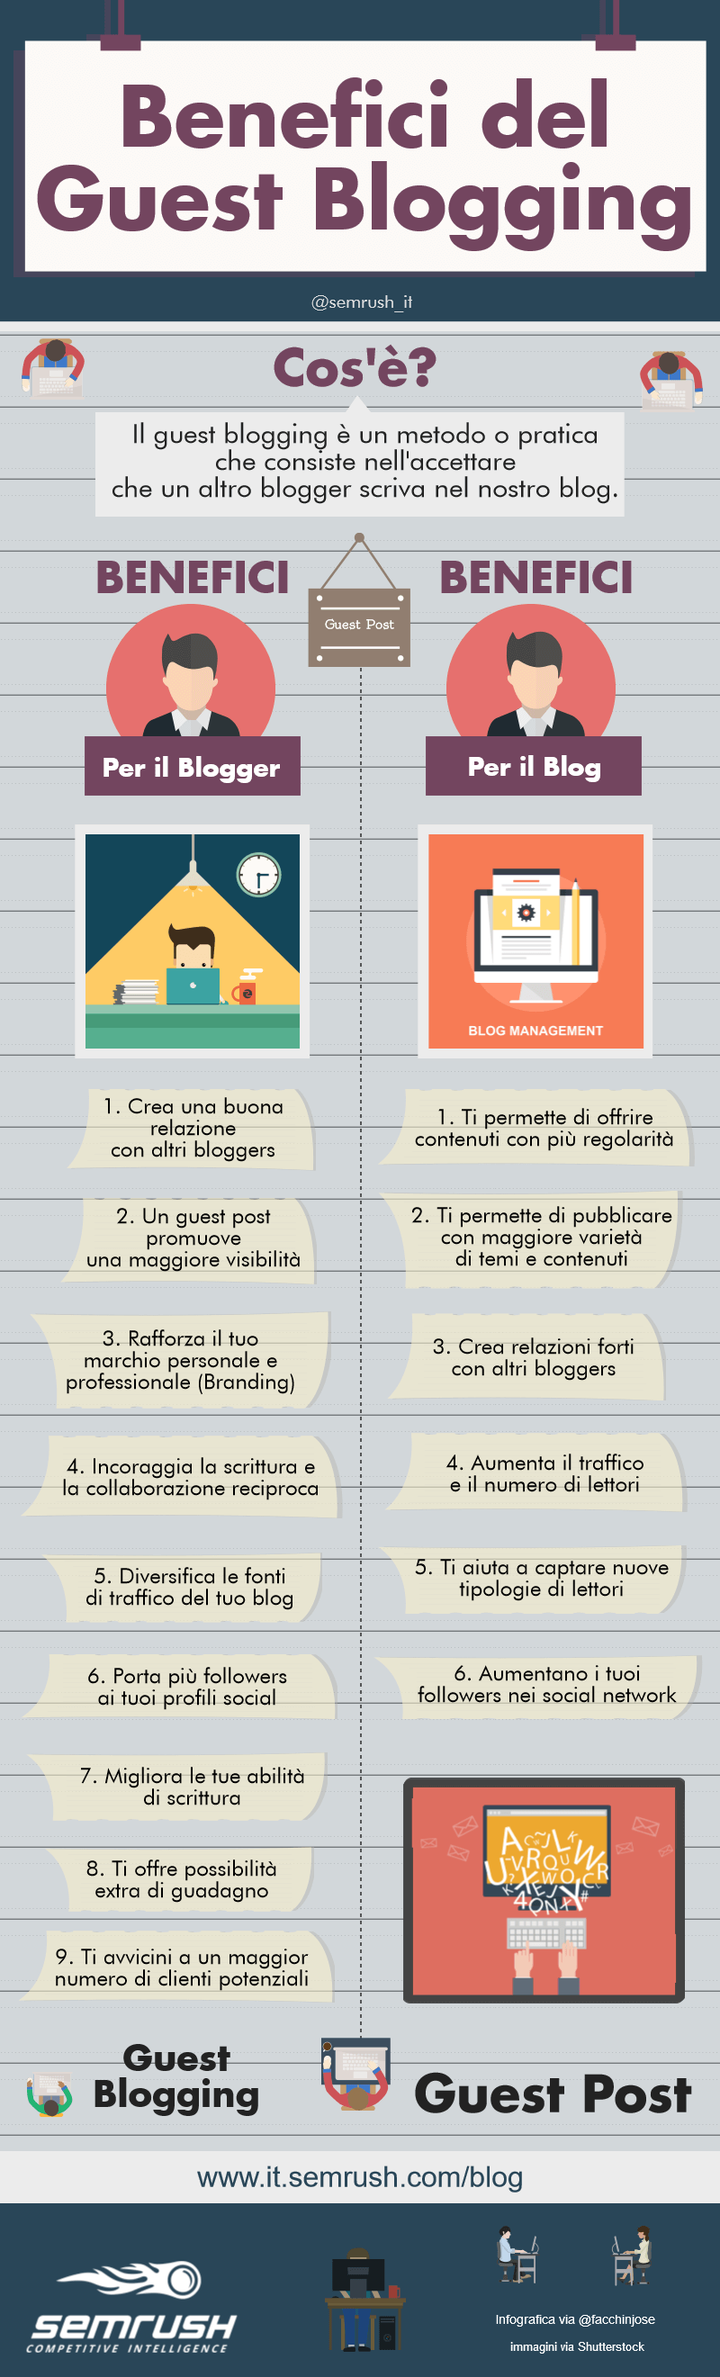 Benefici del guest blogging